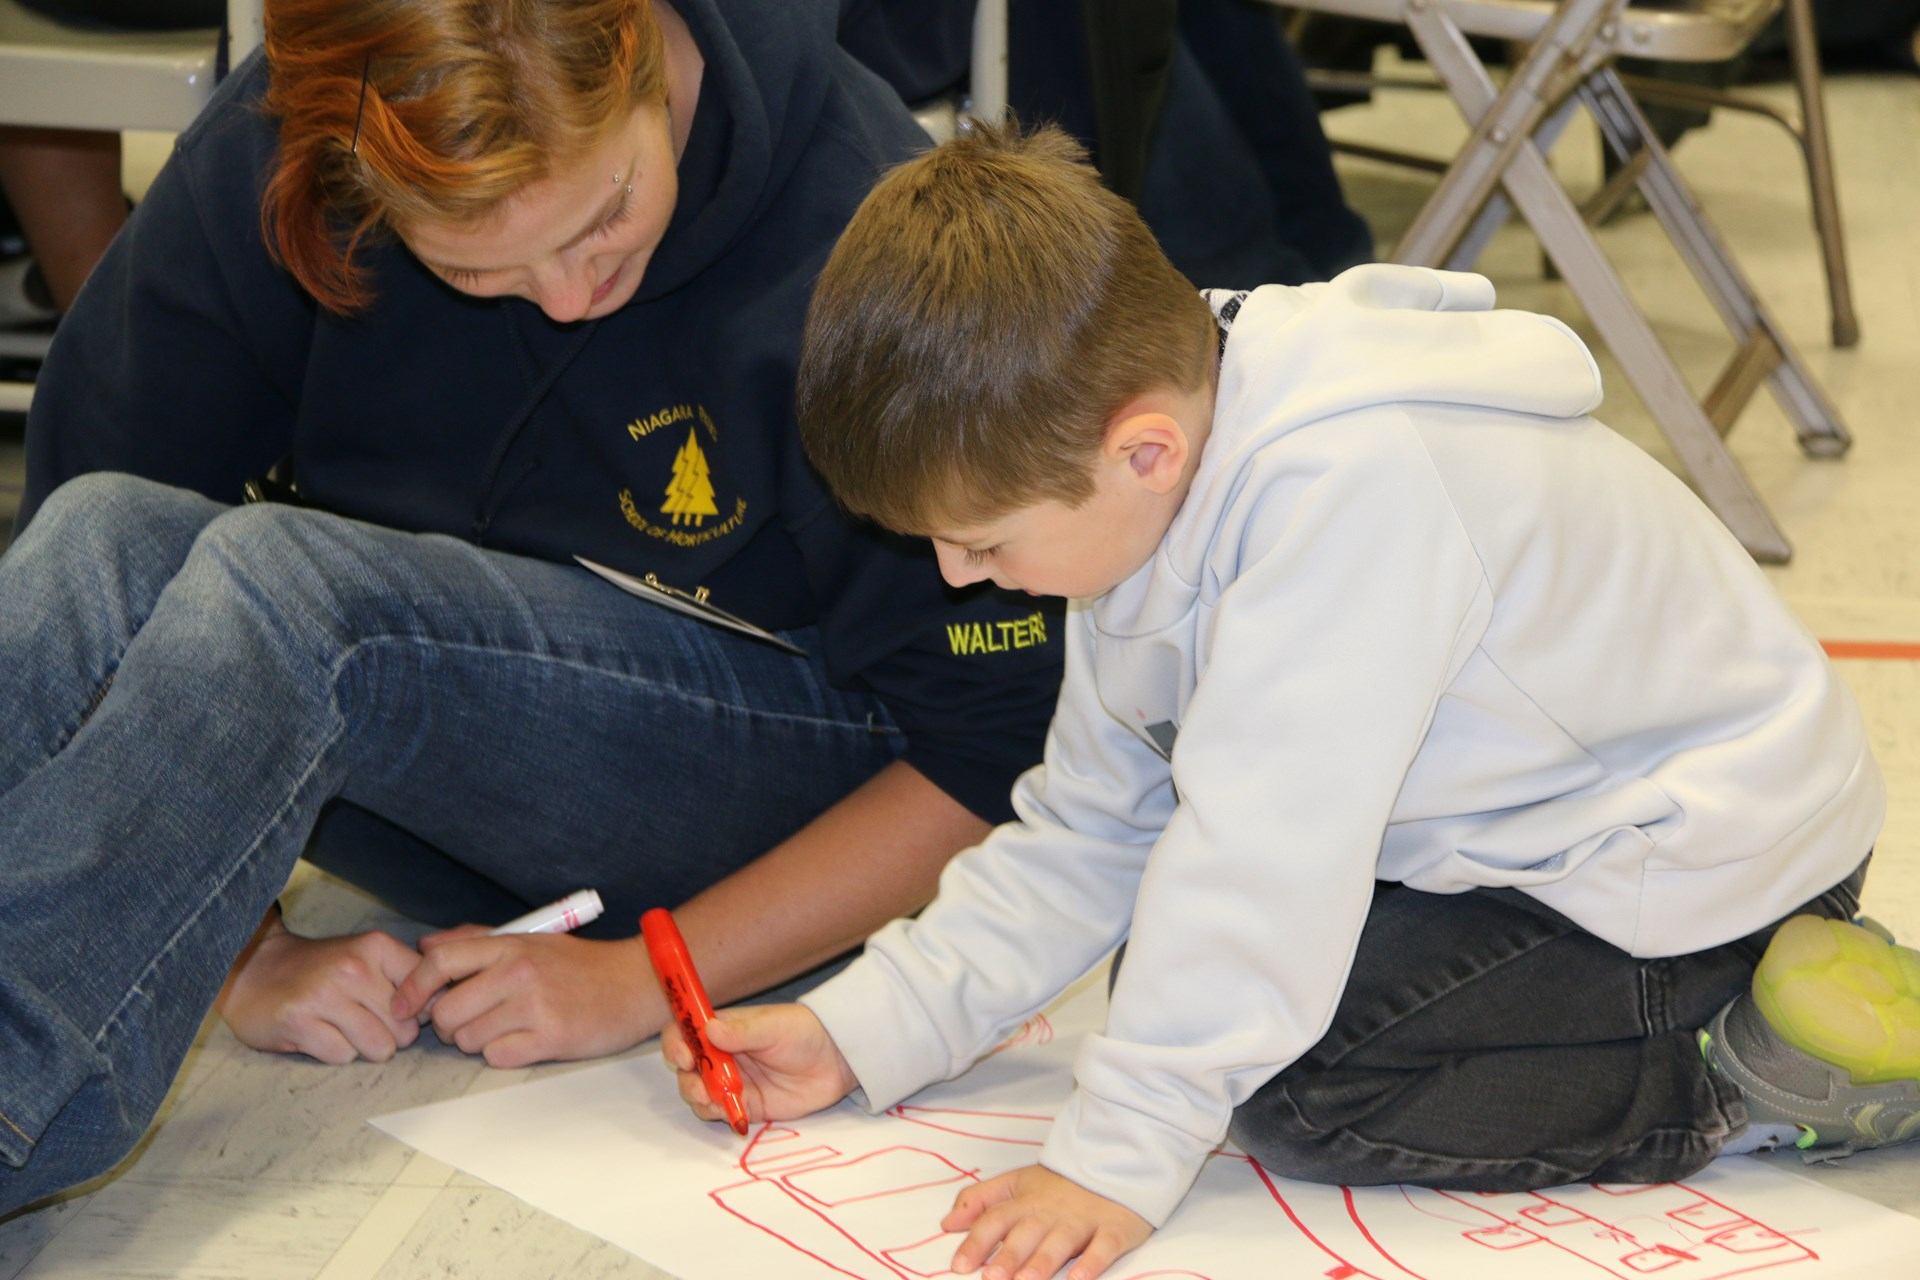 students drawing together